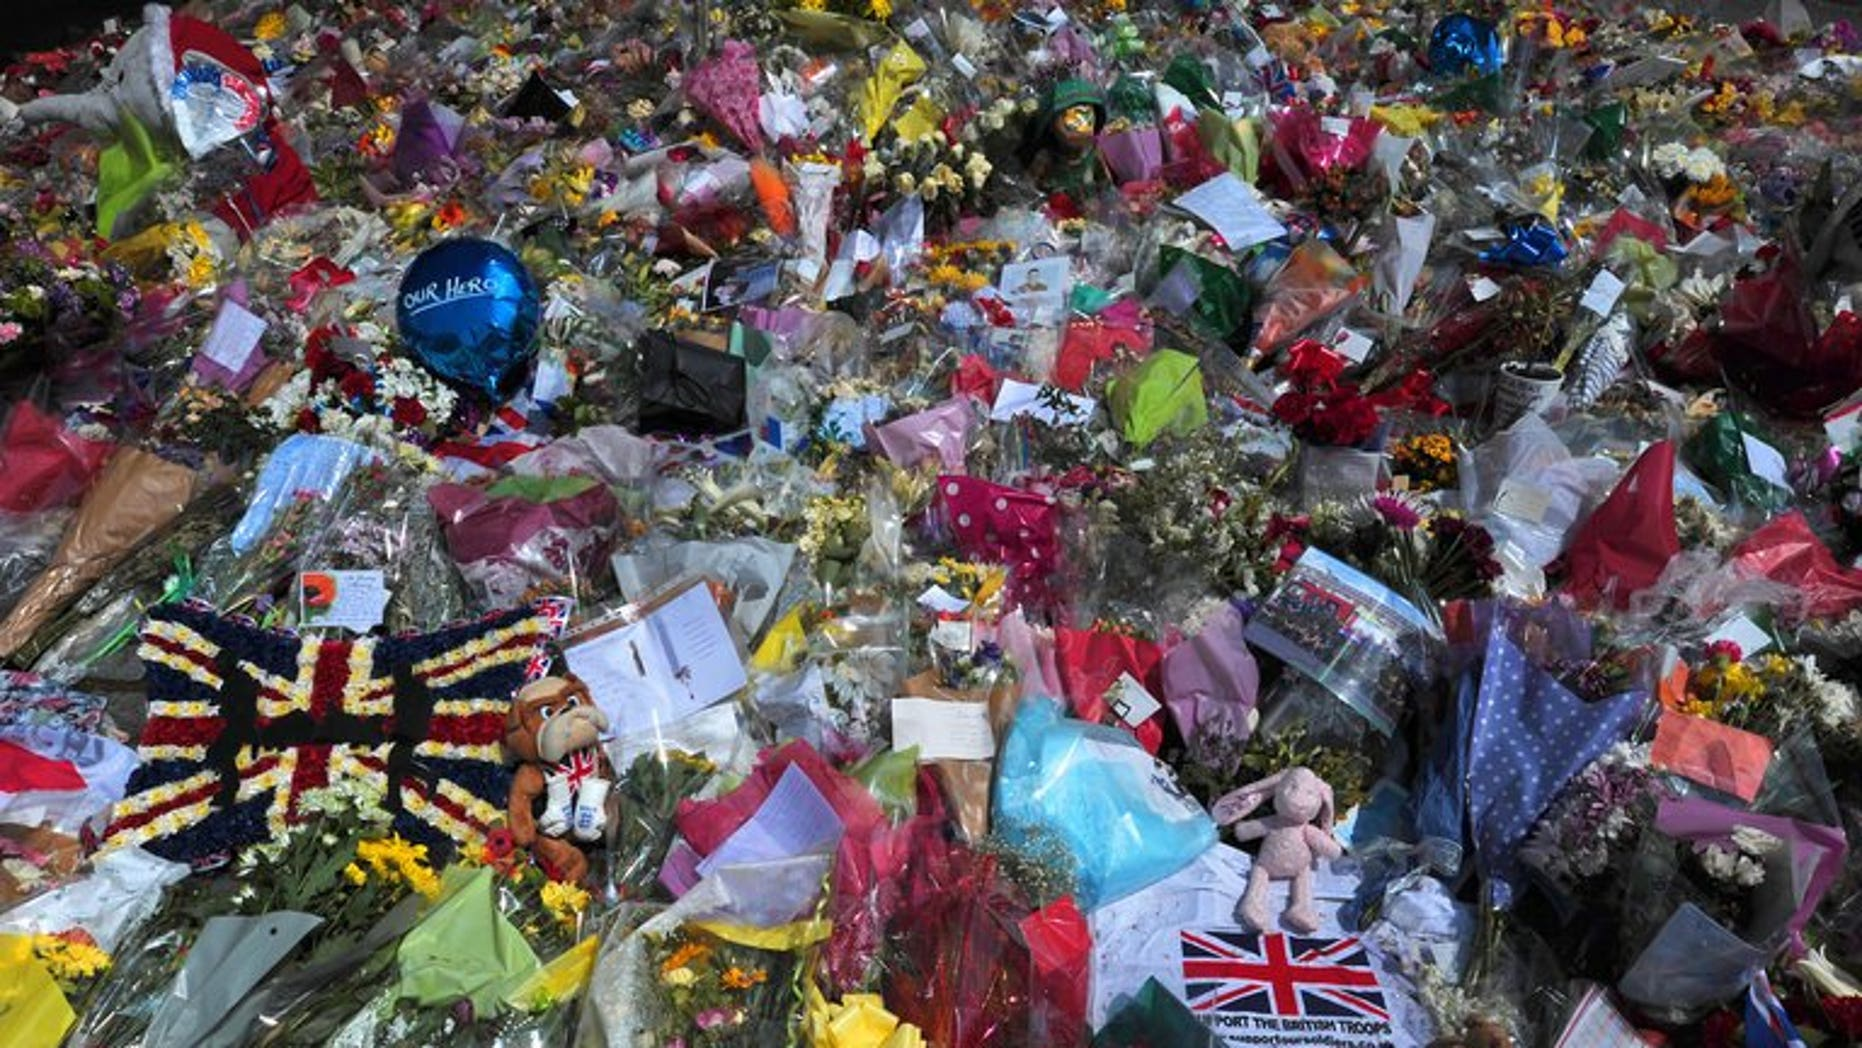 Floral tributes are seen at the scene of the murder of Lee Rigby outside Woolwich Barracks on May 31, 2013. Police are investigating claims that one of the two chief suspects in a brutal suspected Islamist attack, against a British soldier on a London street, was assaulted in prison.